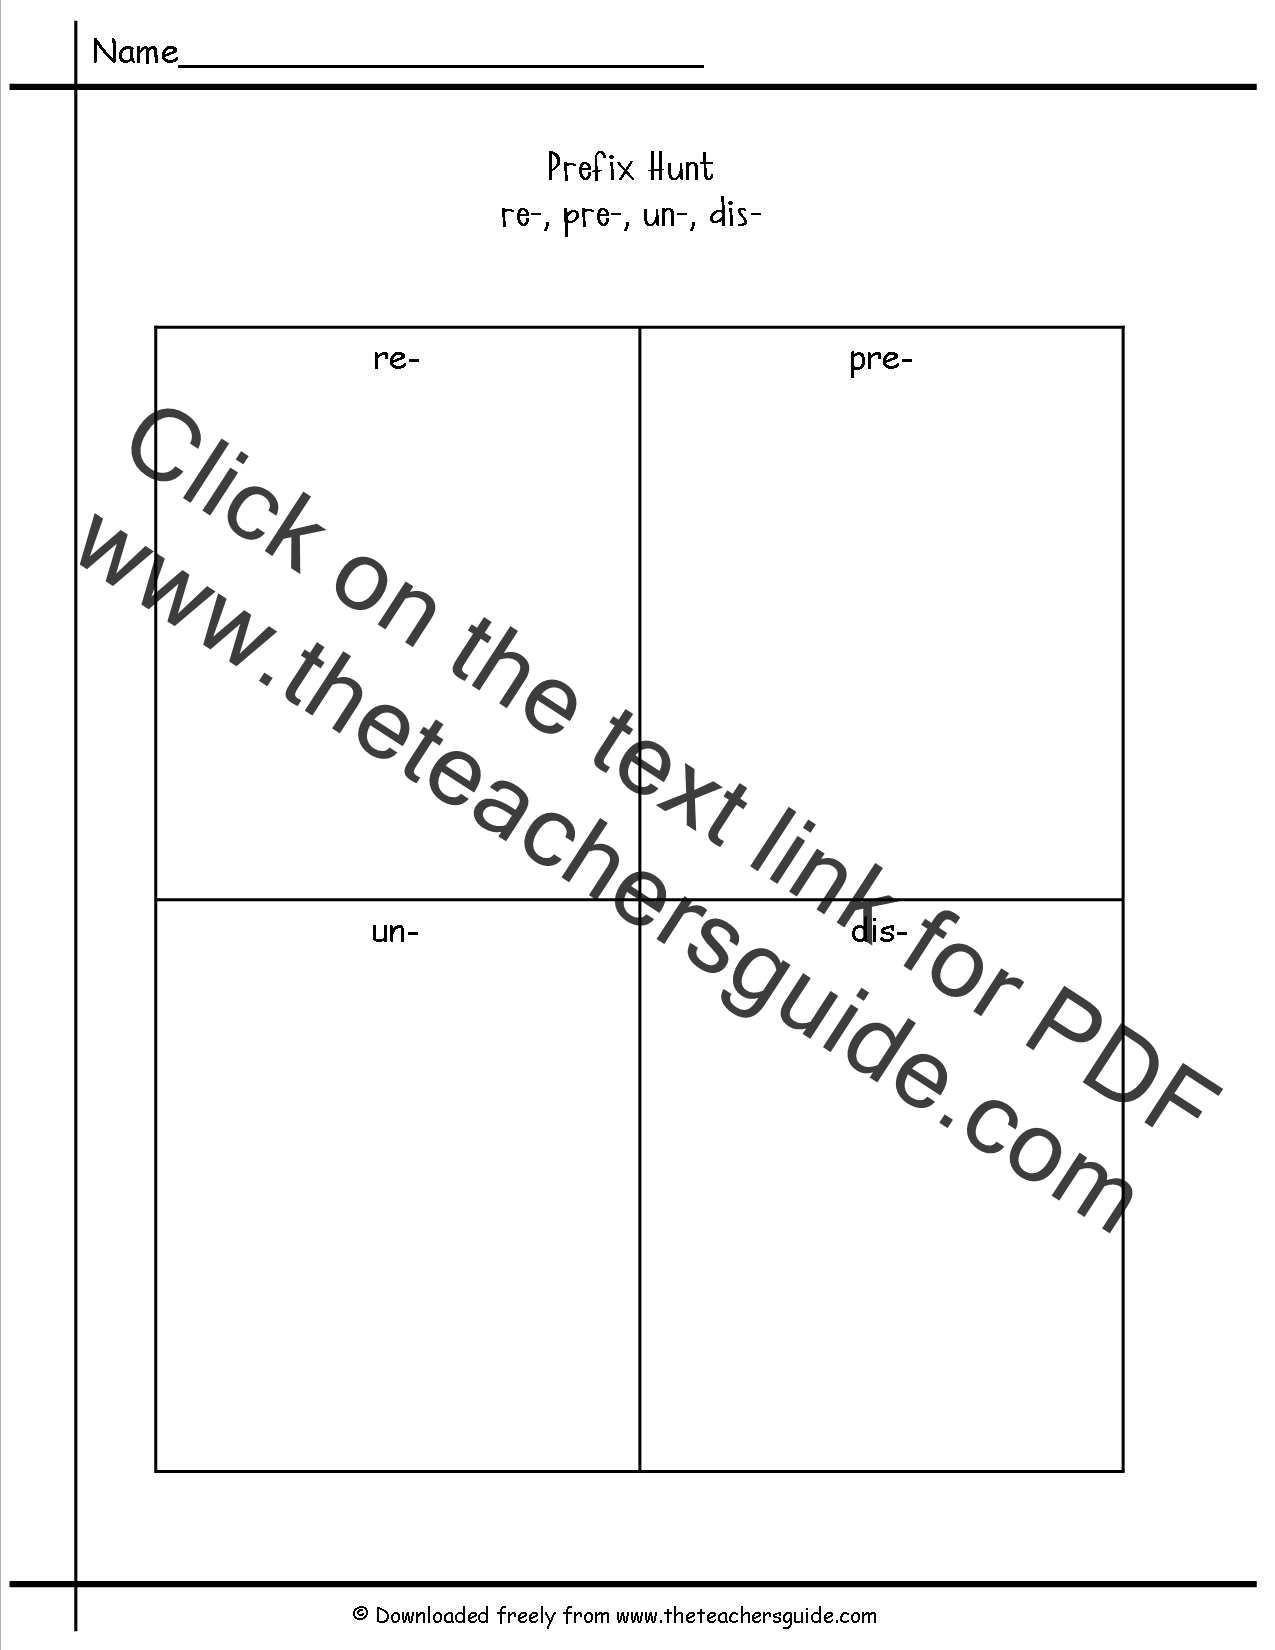 Free Prefixes And Suffixes Worksheets From The Teacher S Guide